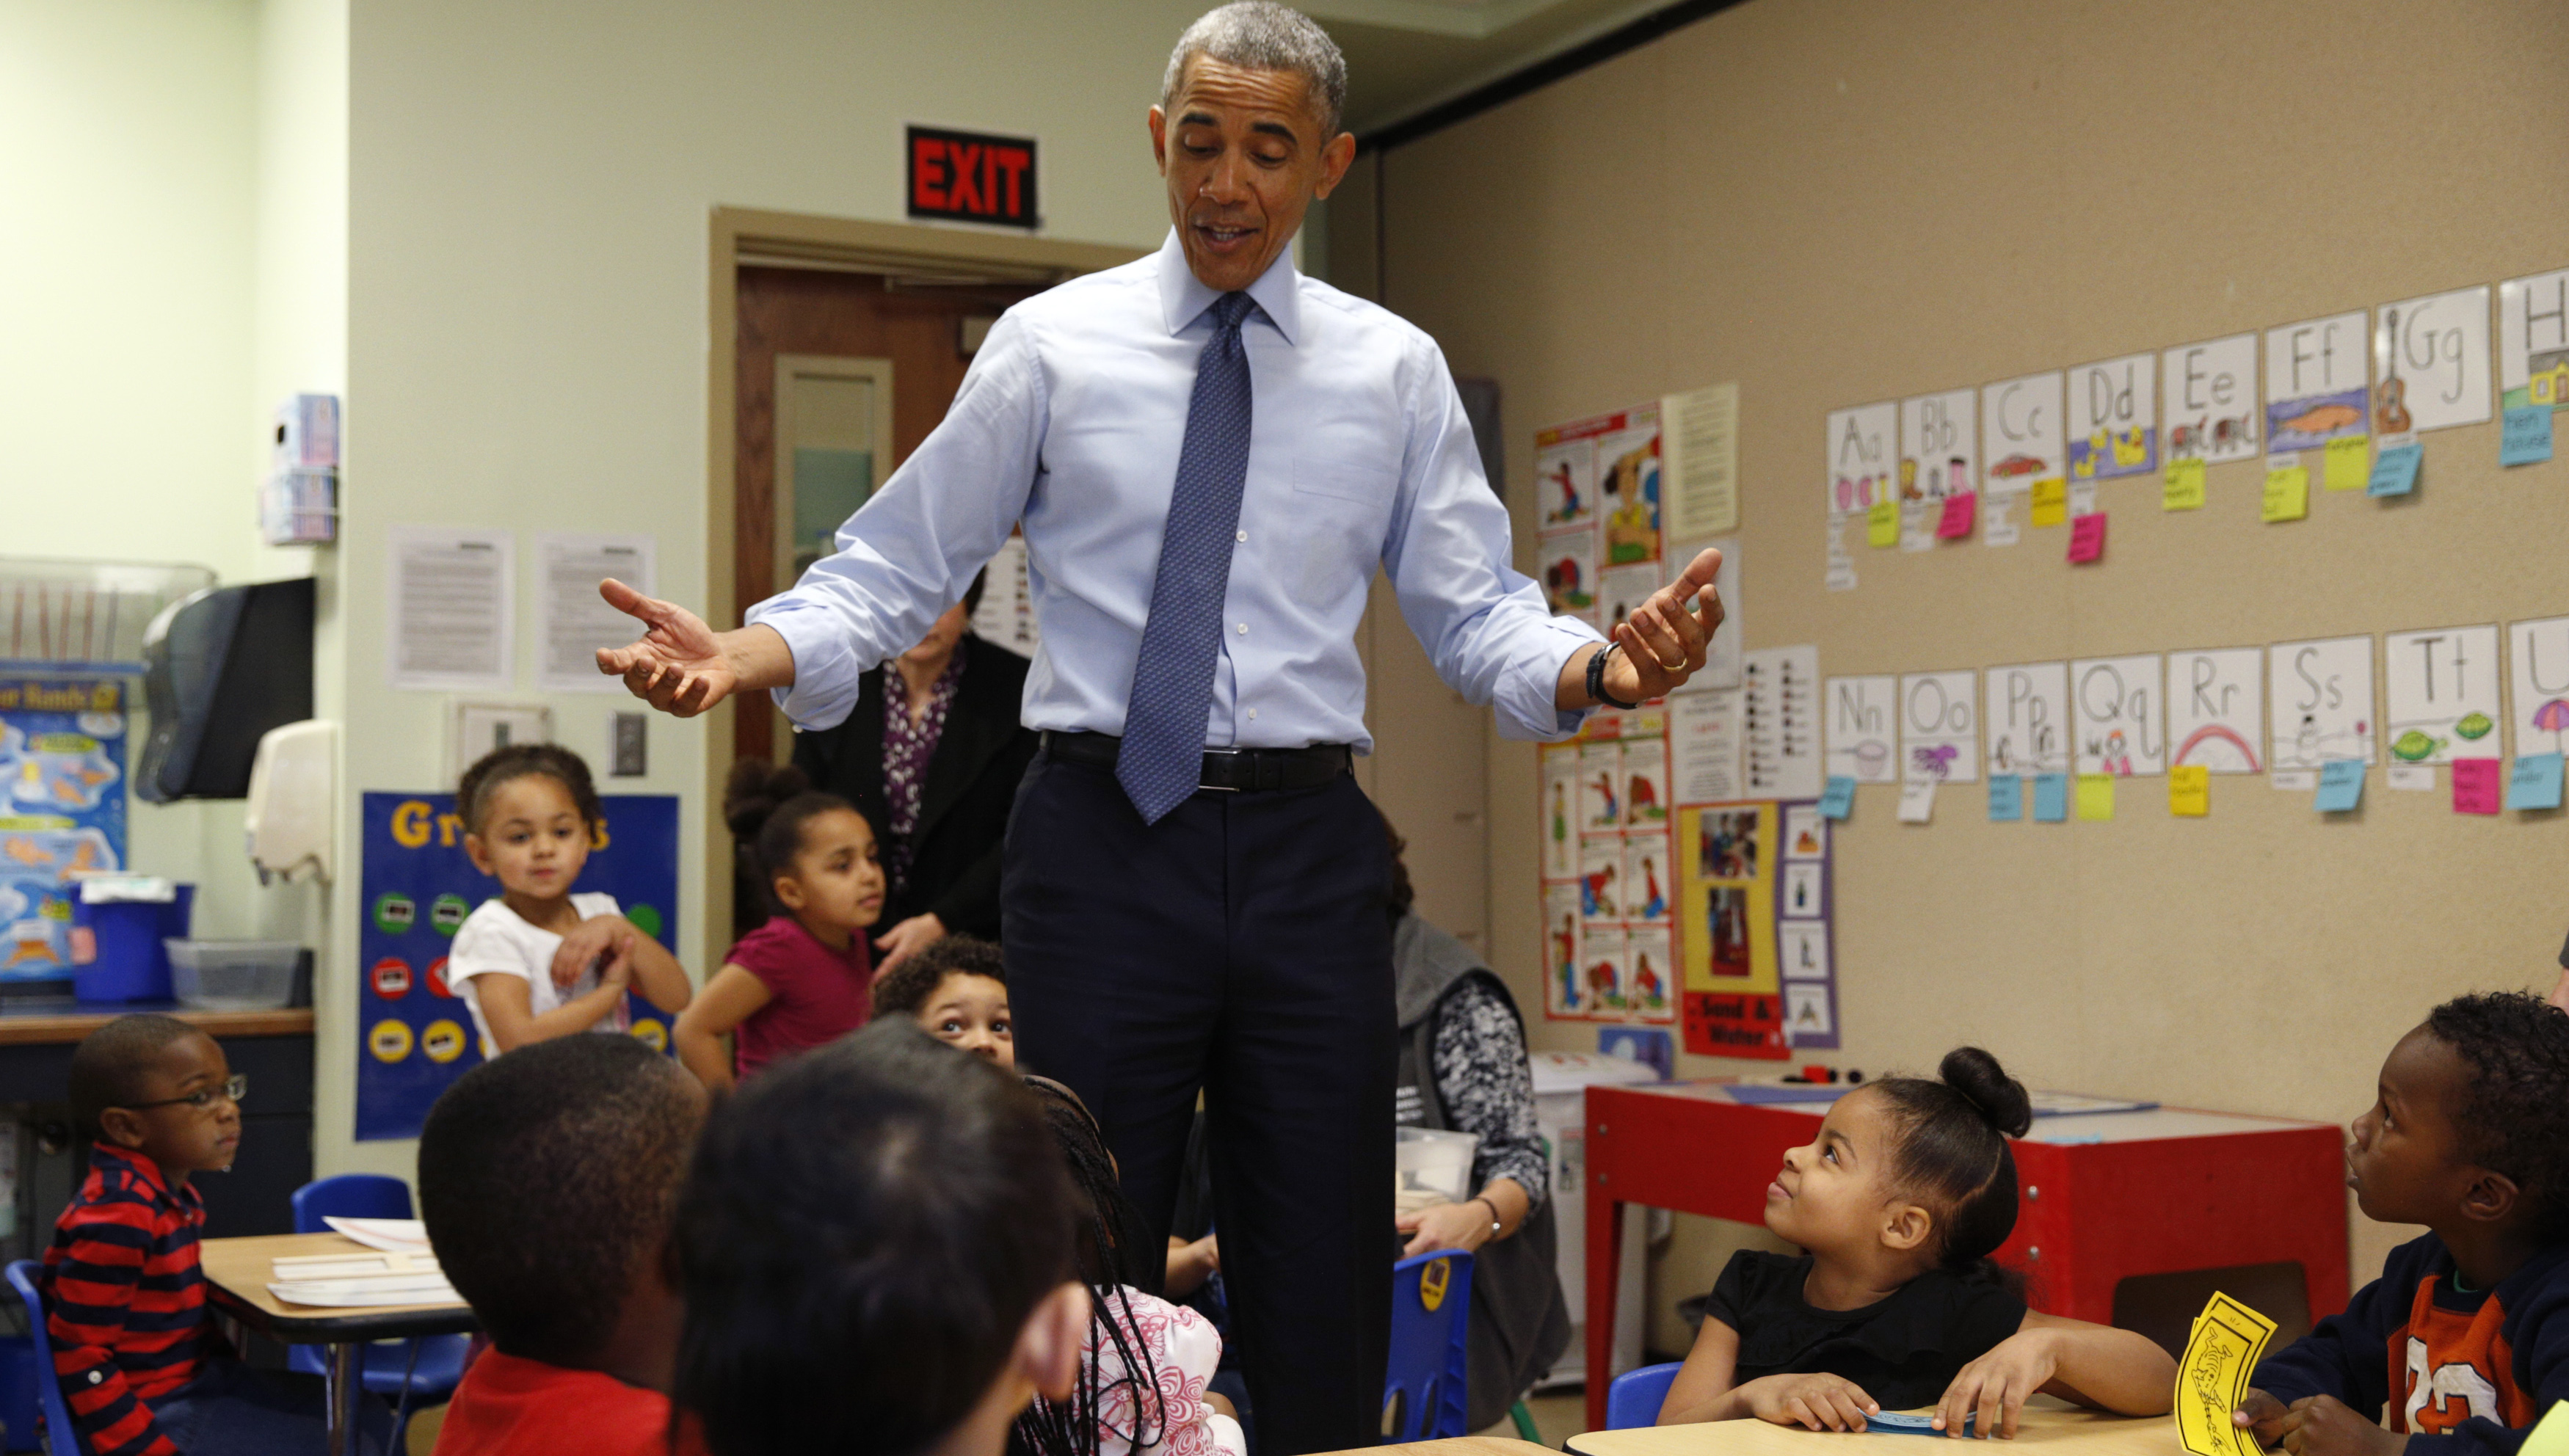 U.S. President Barack Obama visits a classroom at the Community Children's Center in Lawrence